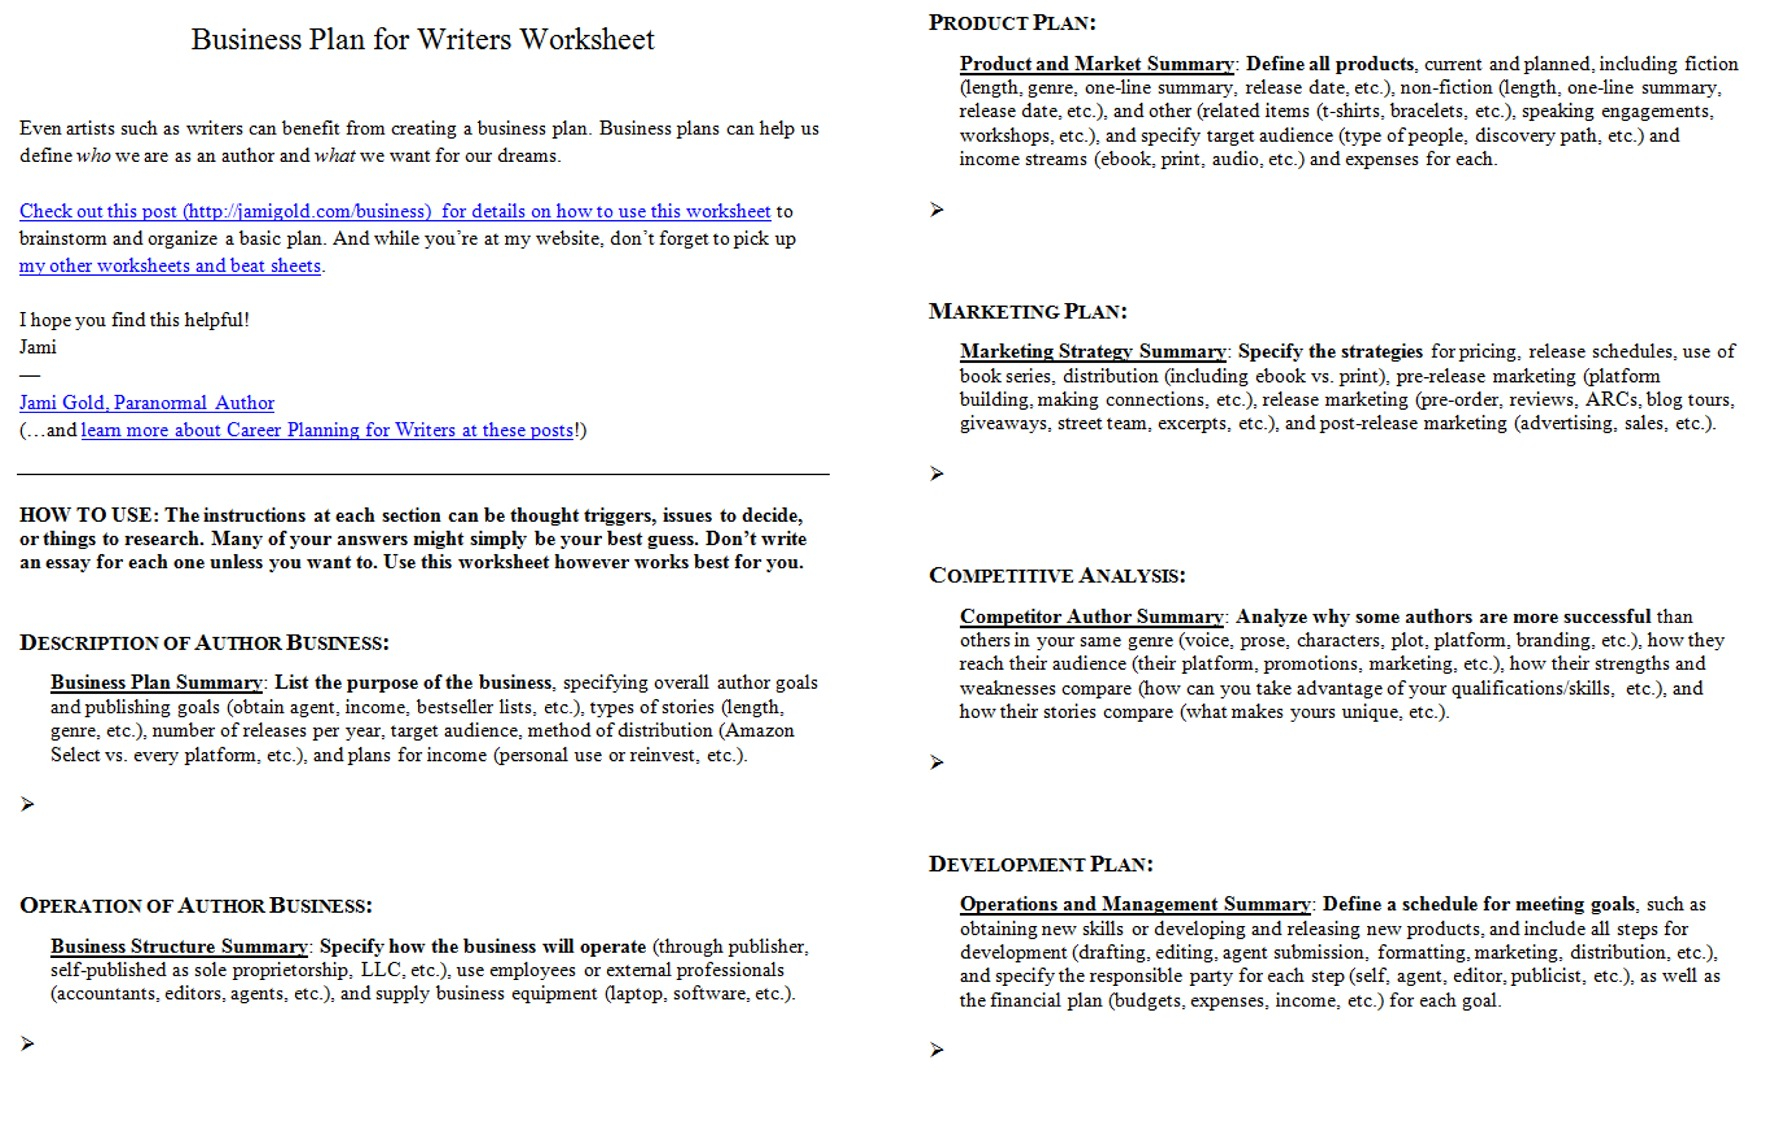 Weirdmailus  Prepossessing Worksheets For Writers  Jami Gold Paranormal Author With Inspiring Screen Shot Of Both Pages Of The Business Plan For Writers Worksheet With Appealing Classroom Scavenger Hunt Worksheet Also Compare And Contrast Th Grade Worksheets In Addition Th Grade Math Subtraction Worksheets And  Letter Words Worksheets As Well As Fossil Fuel Worksheet Additionally Halloween Math Worksheets First Grade From Jamigoldcom With Weirdmailus  Inspiring Worksheets For Writers  Jami Gold Paranormal Author With Appealing Screen Shot Of Both Pages Of The Business Plan For Writers Worksheet And Prepossessing Classroom Scavenger Hunt Worksheet Also Compare And Contrast Th Grade Worksheets In Addition Th Grade Math Subtraction Worksheets From Jamigoldcom